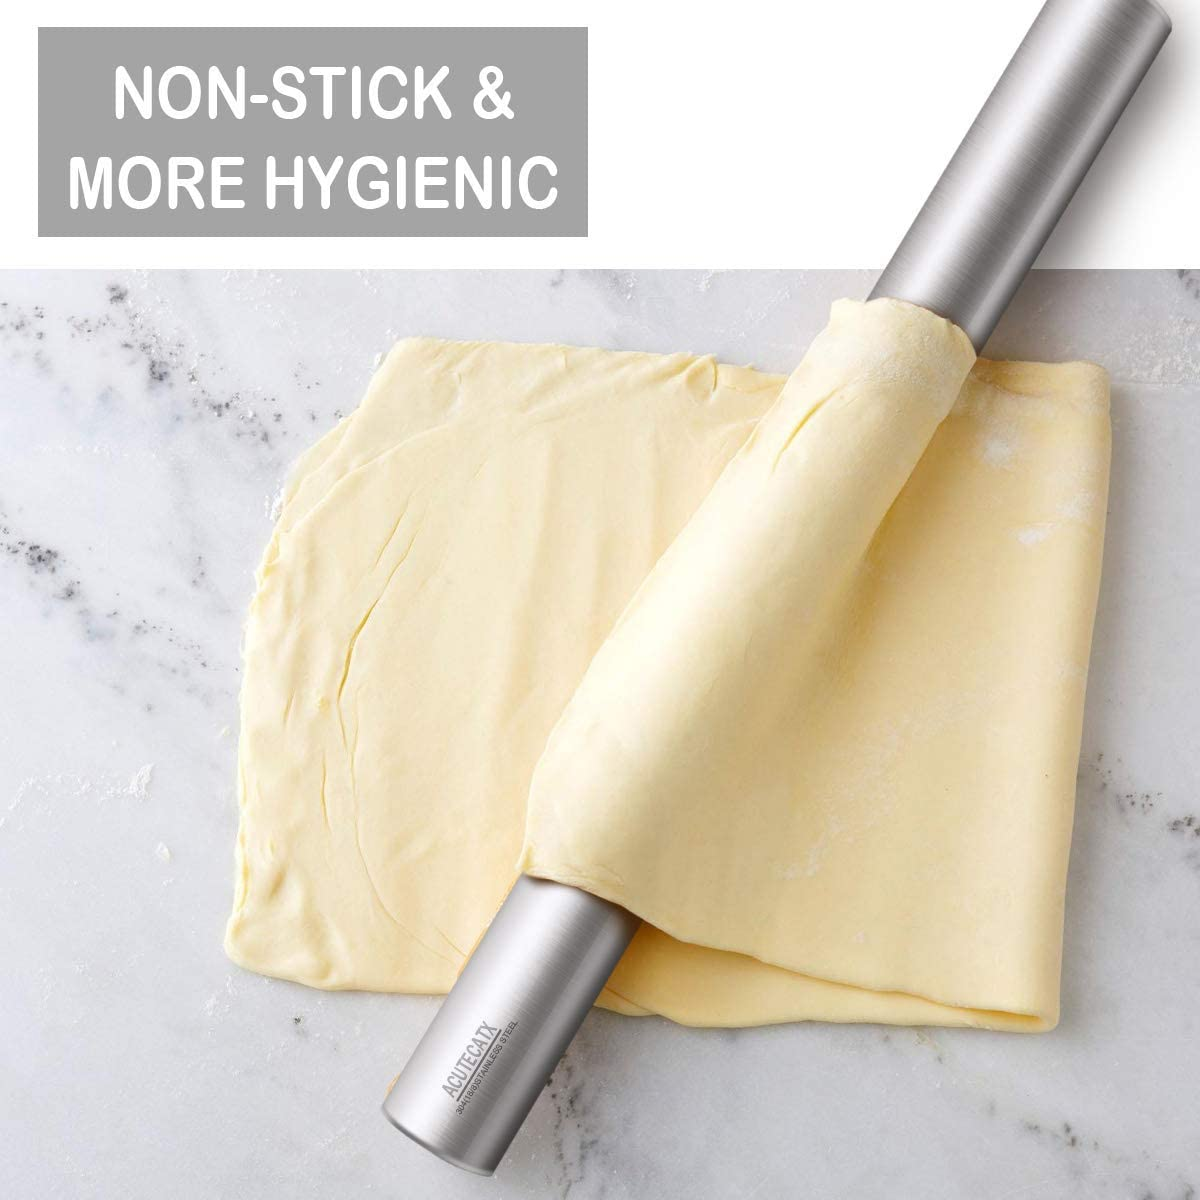 Essential Kitchen Utensils Pastry 16 inches Pie Crust Cookie Islandoffer Classic Beechwood Rolling Pin for Fondant Dough